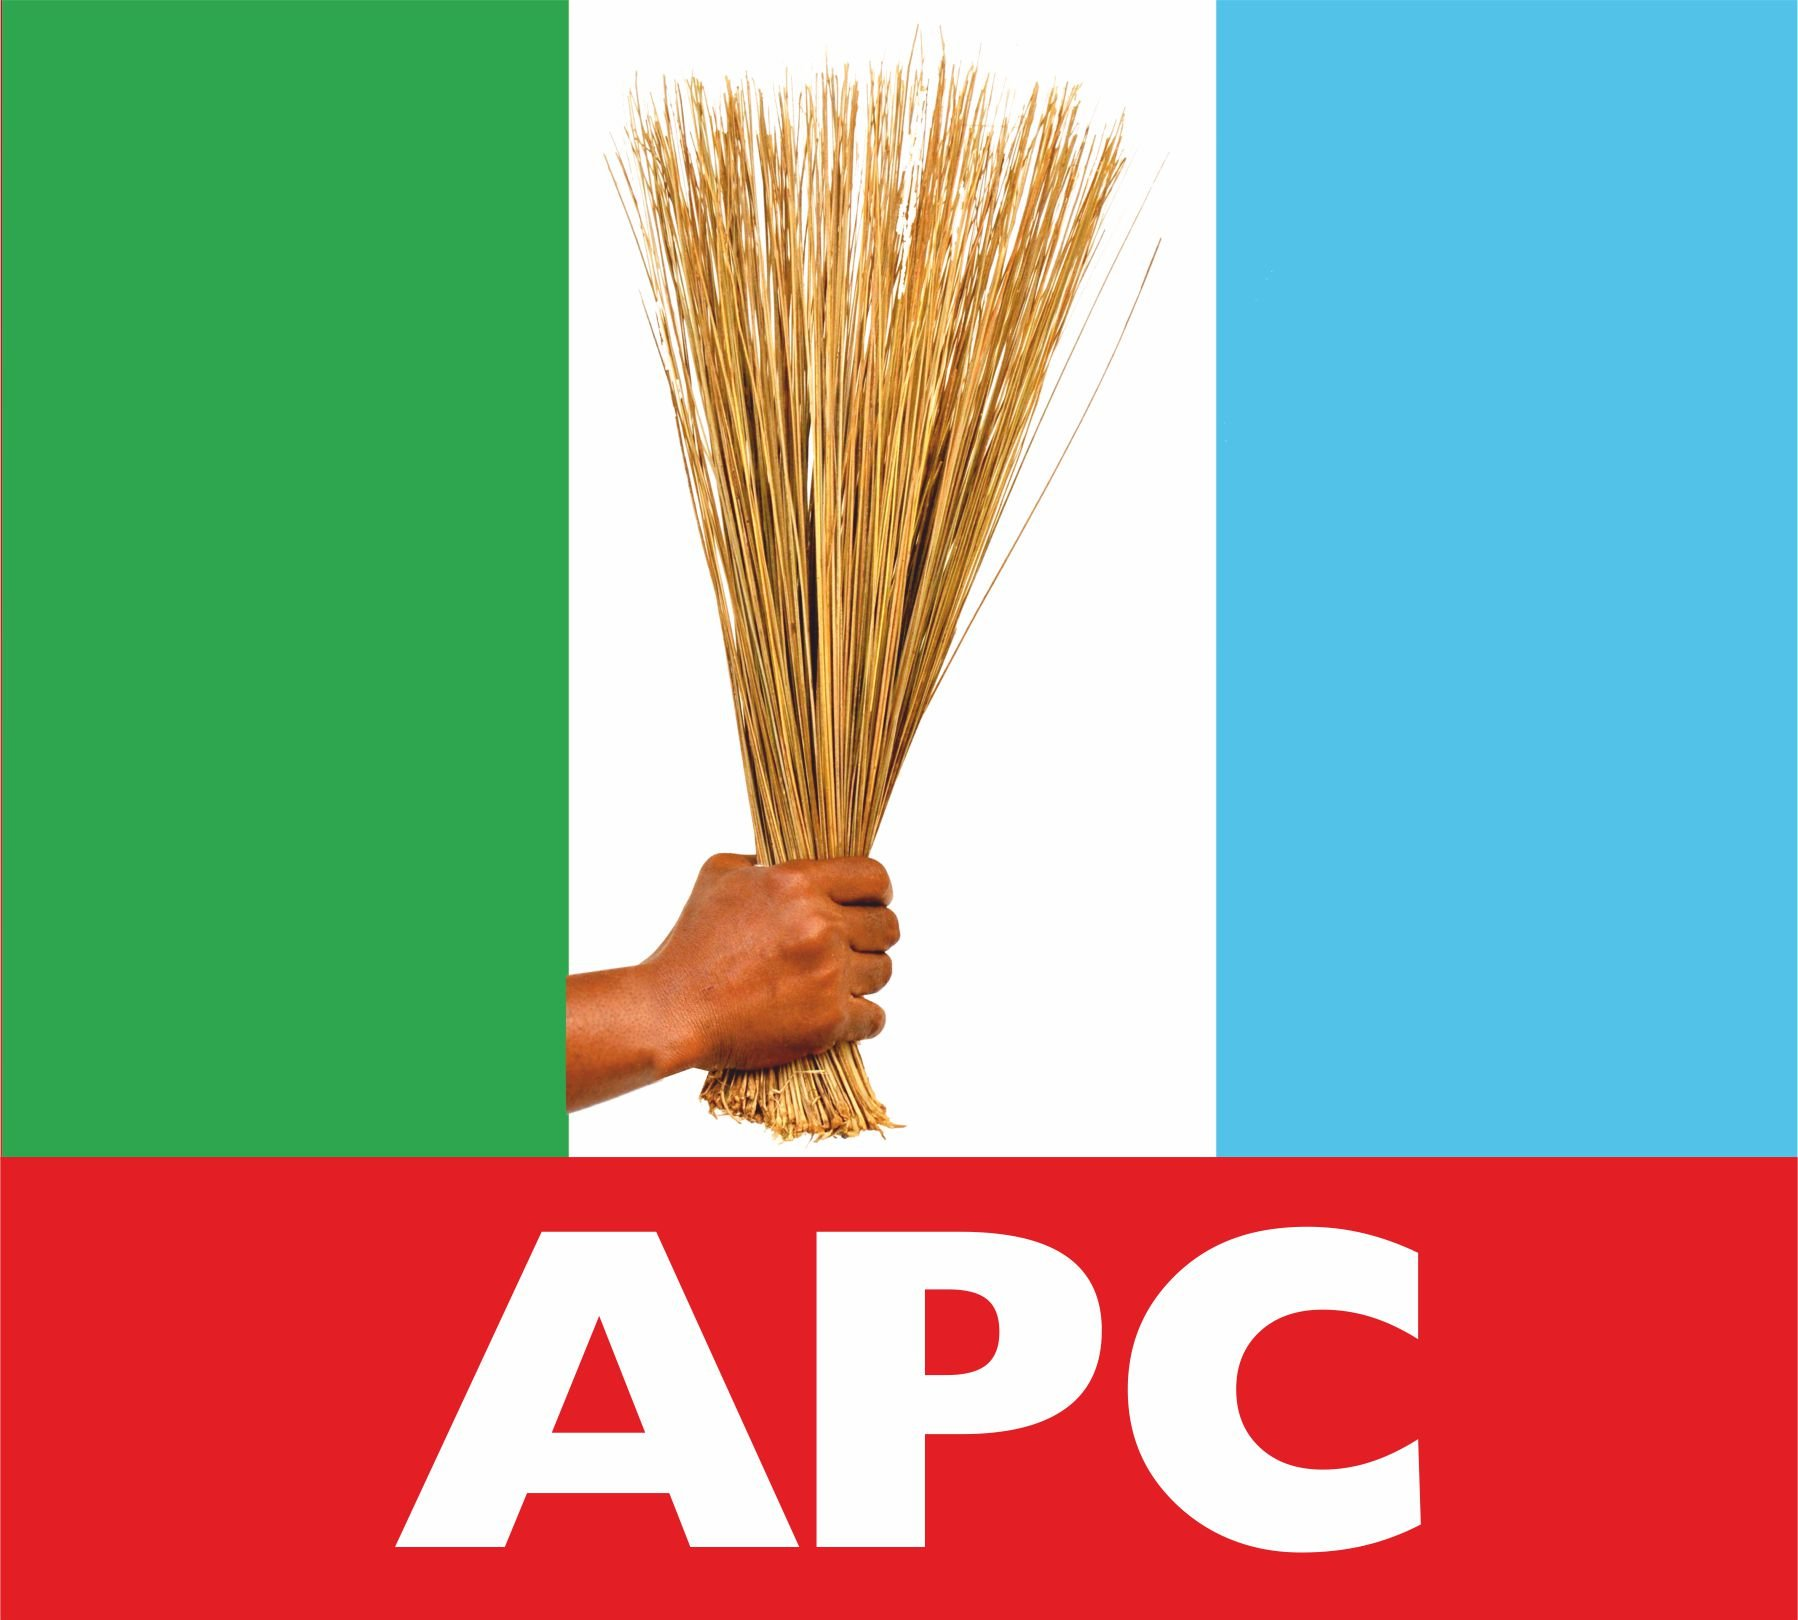 Why APC took the blame for Nigeria's economic woes – Ebri